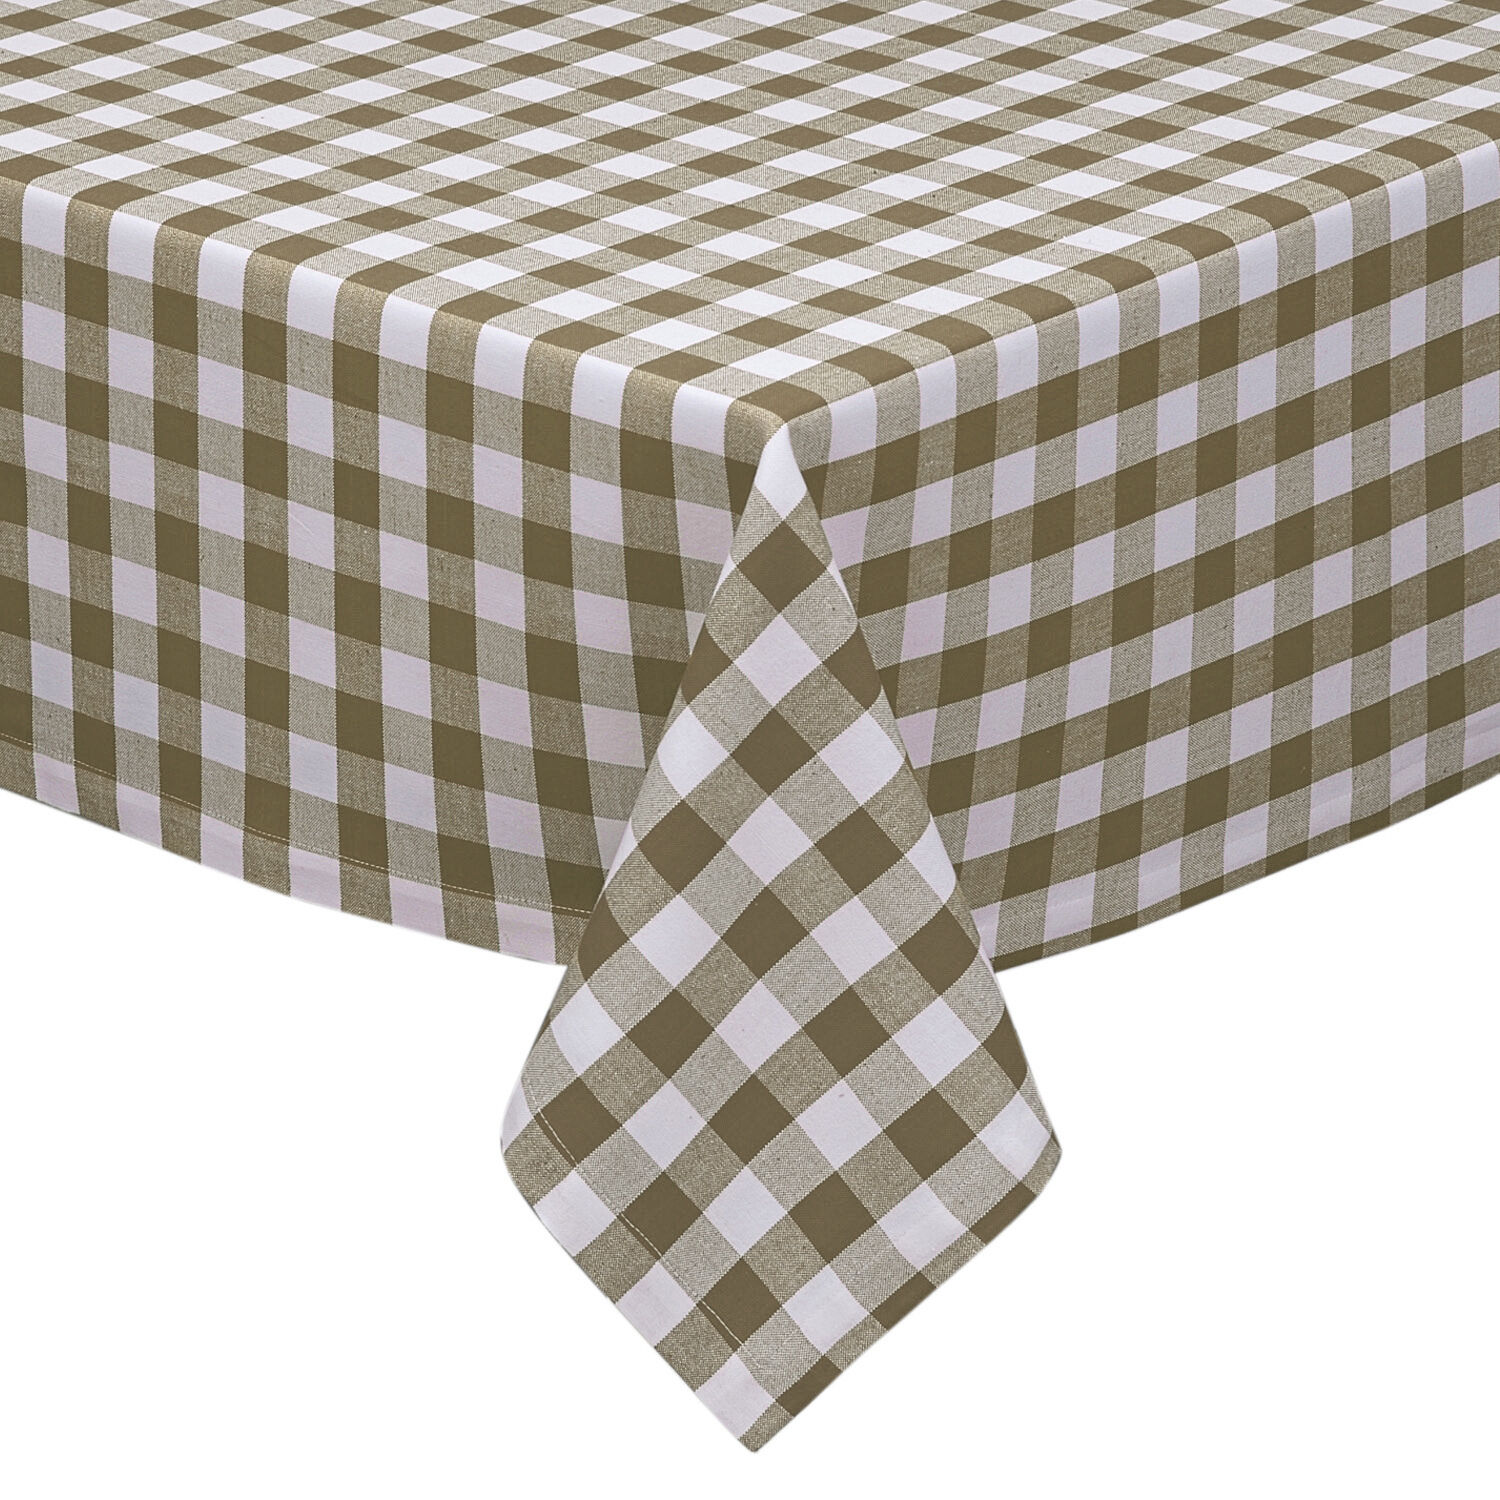 Taupe & White Cotton Rich Checkered Kitchen Tablecloth: Ging